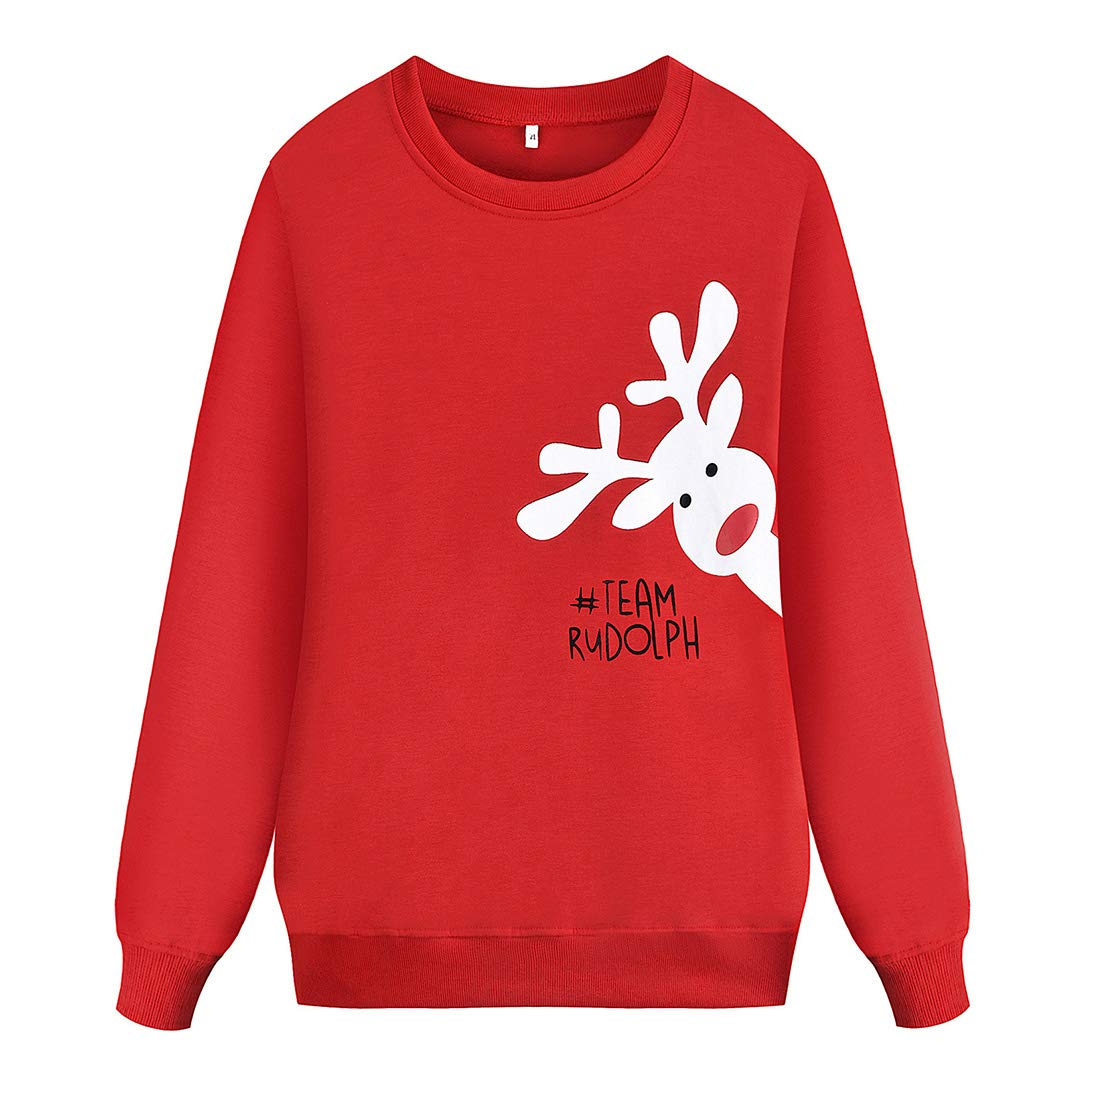 Christmas Matching Family Sweatshirts Elf//Reindeer Long Sleeve Round Neck Red Novelty Xmas Sweater Mom Dad and Baby Pullover for Men Women Girls Boys